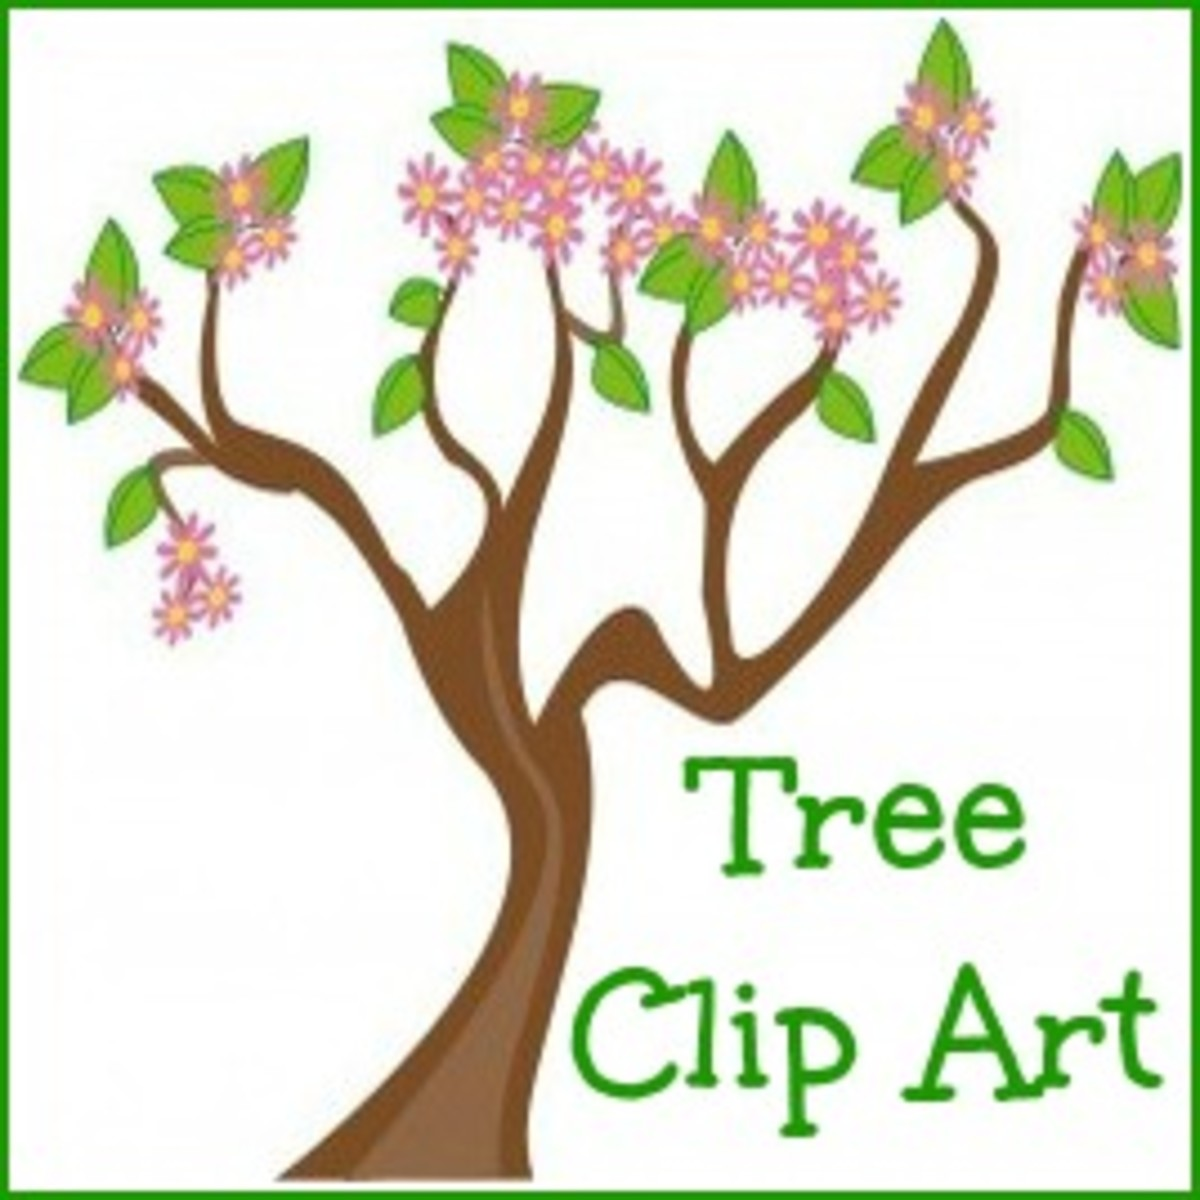 TREE CLIP ART | 175 Free Clip Art Trees